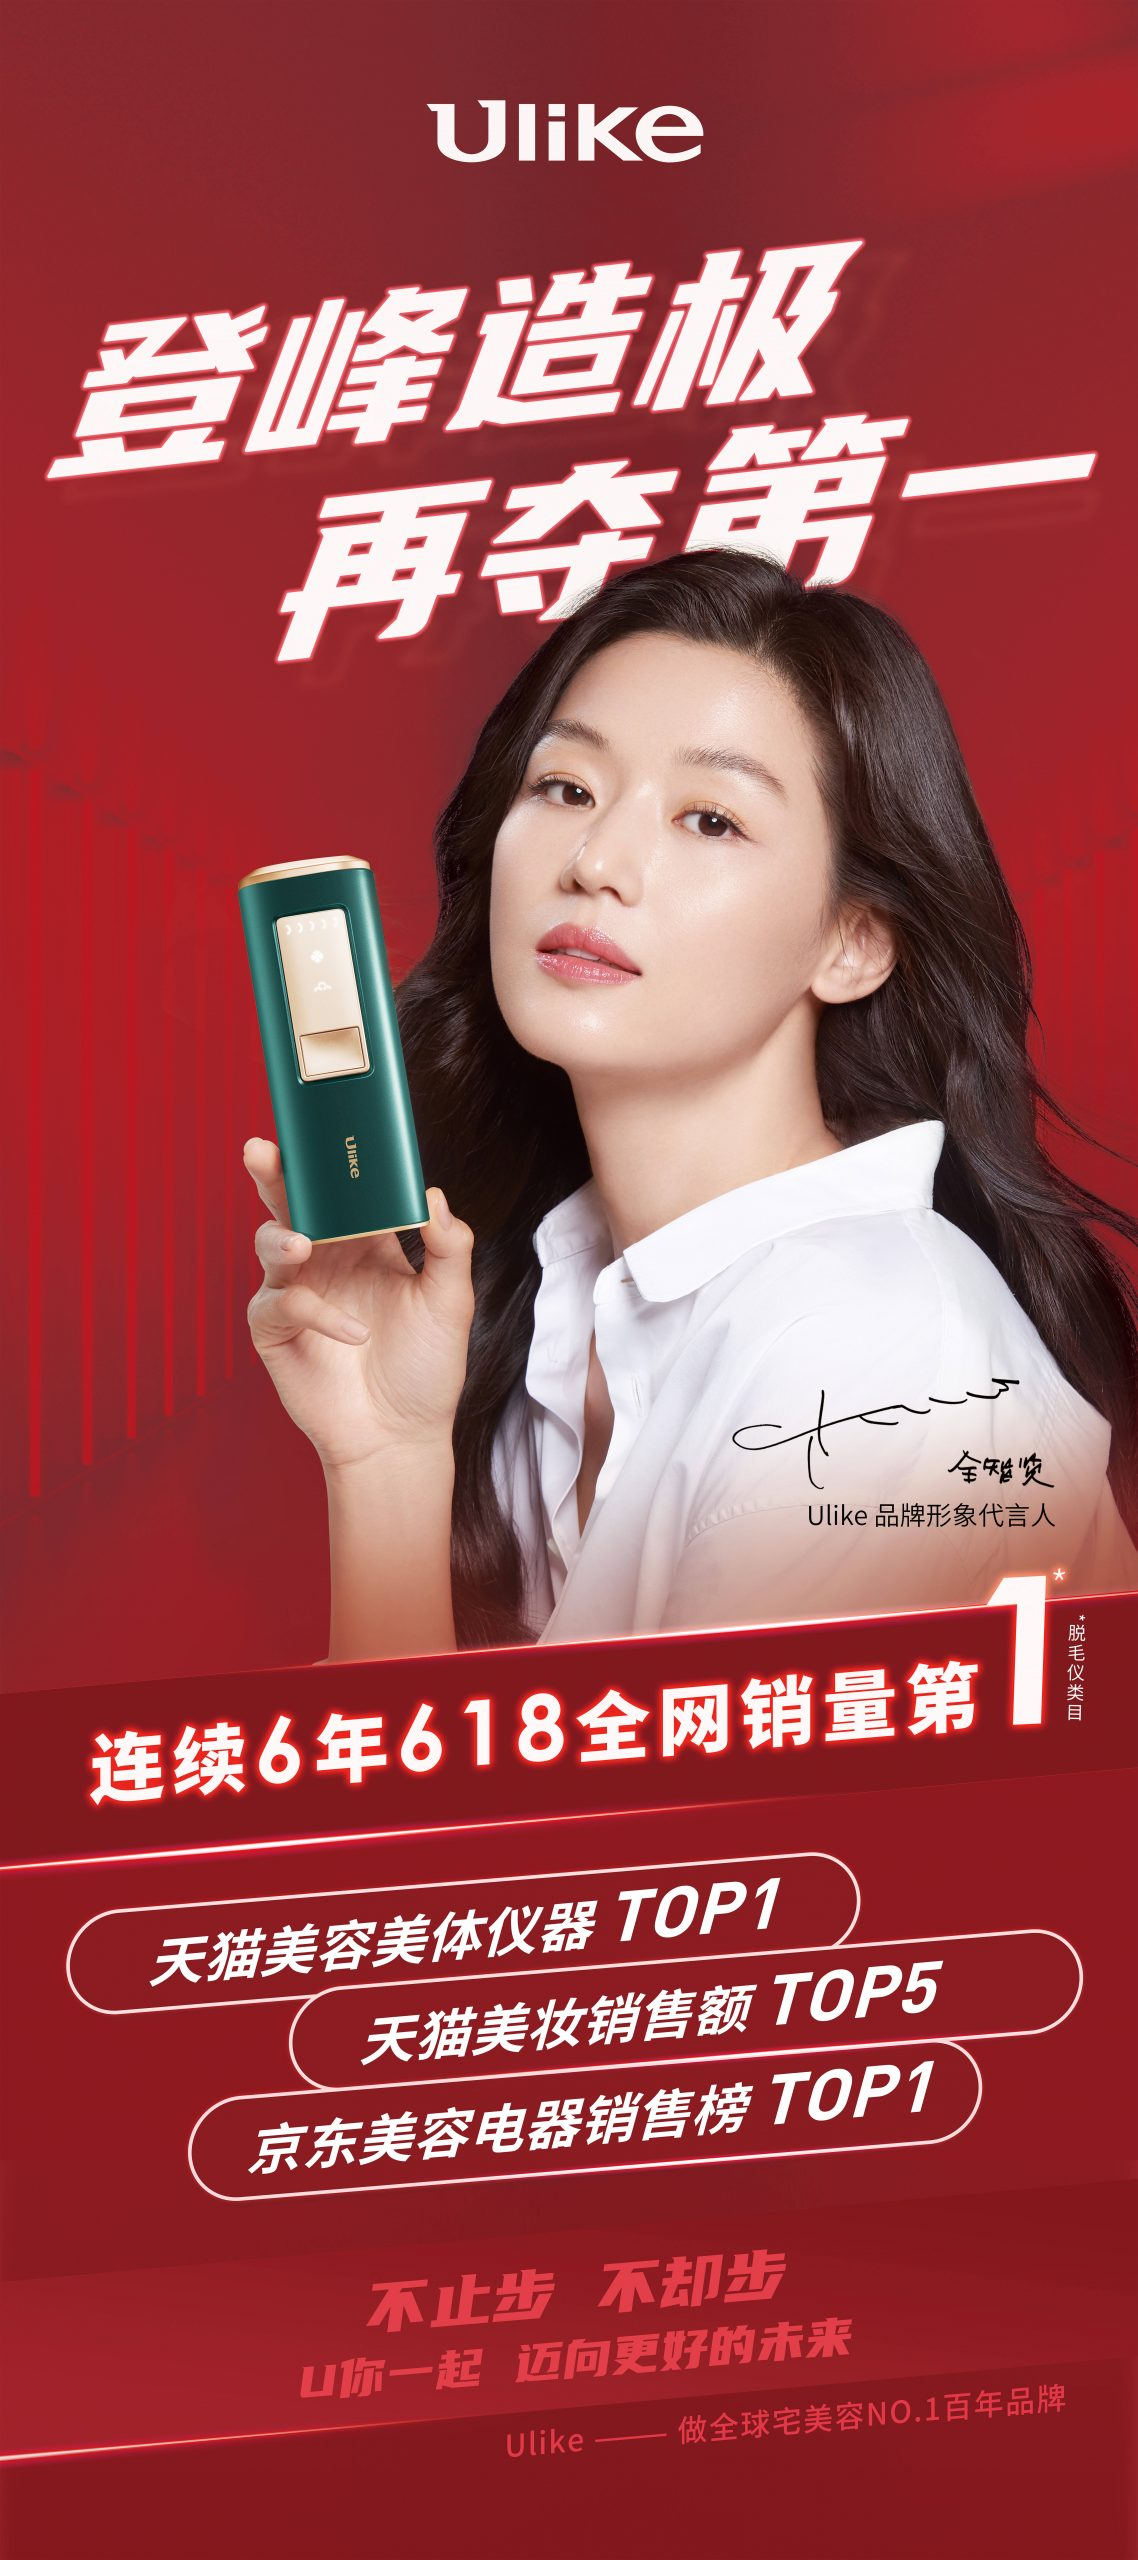 For six consecutive years, Tmall's vertical sales have been the top one. See how Ulike opens the hair removal device track